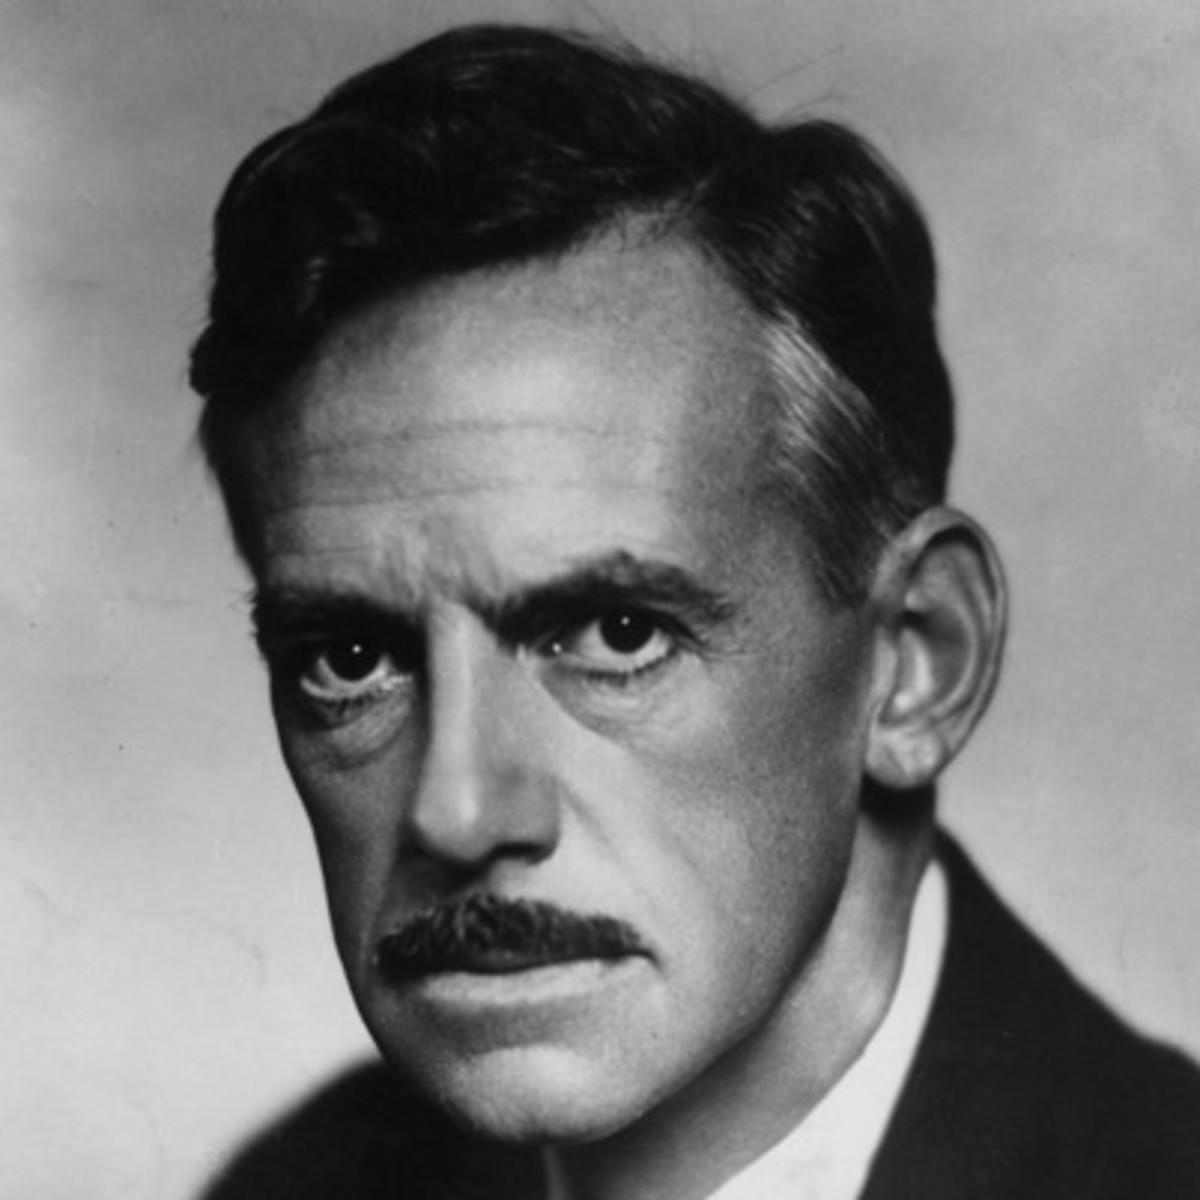 a biography of eugene oneill Biography of eugene o'neil eugene o'neill through poverty and fame, an artist or nothing(miller p6), was the motto of a man named eugene o'neill, who wrote from his soul in an attempt to find salvation in the year 1888, the barrett house hotel in time.